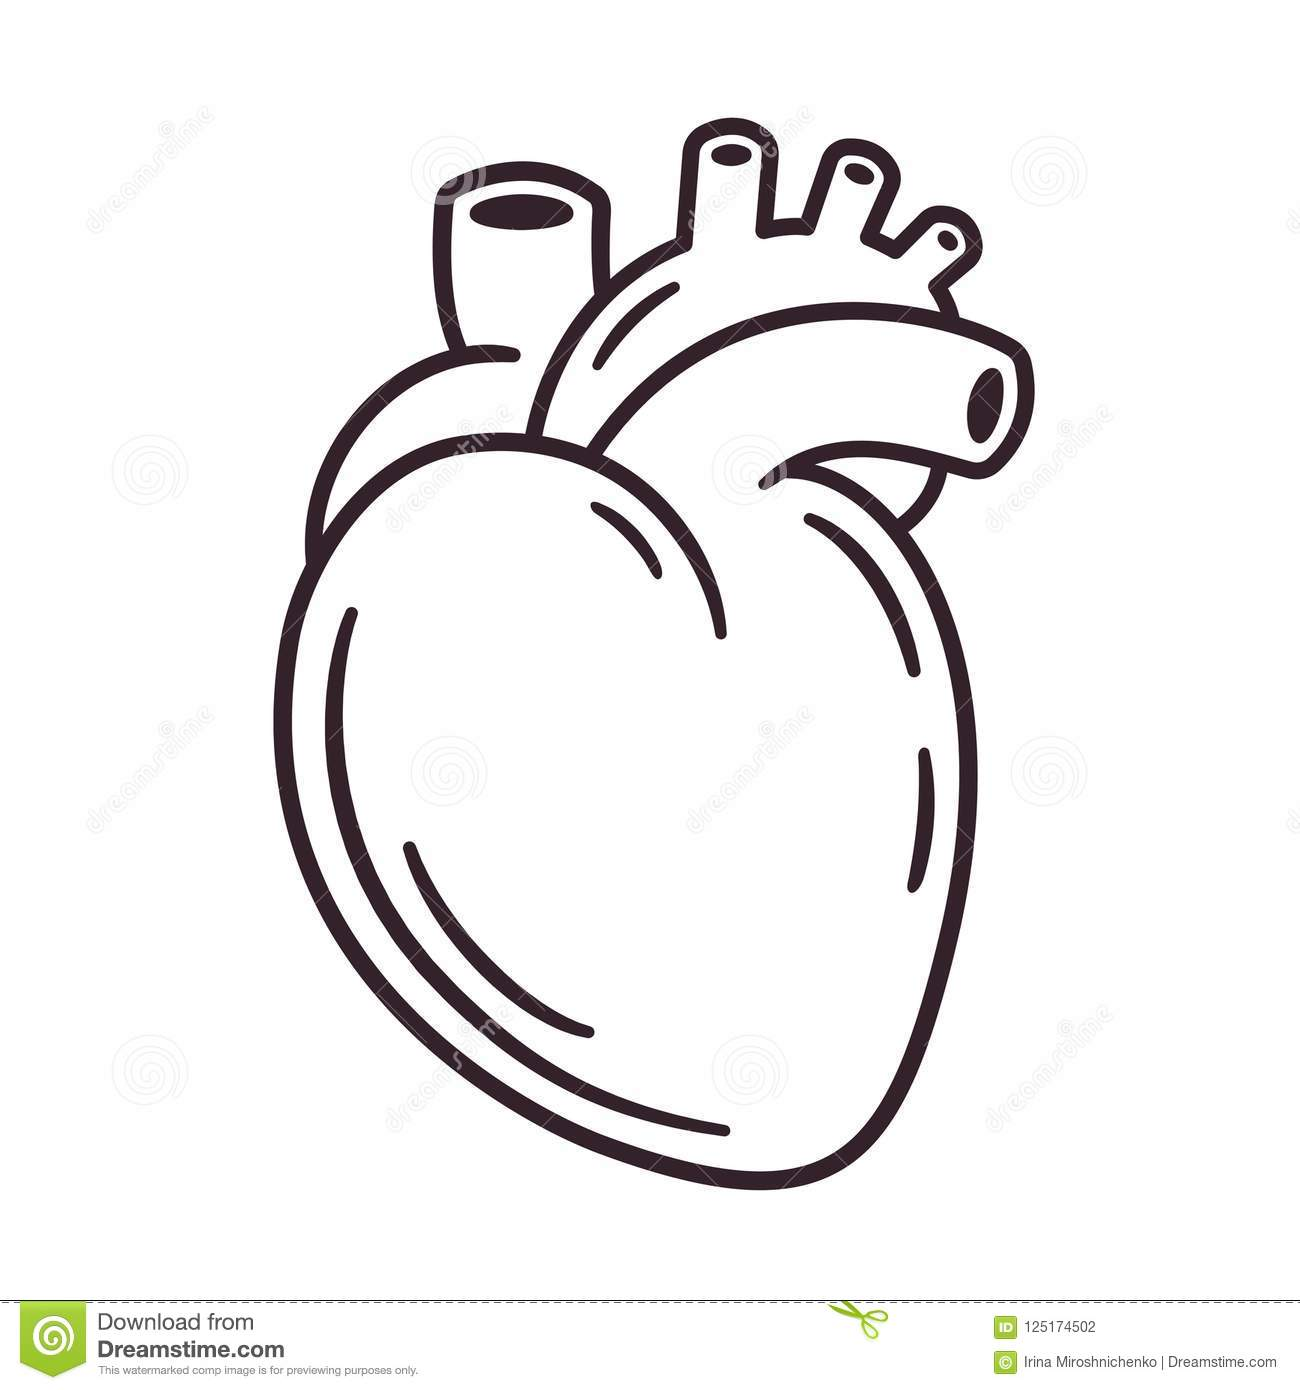 Realistic Heart Drawing Stock Vector Illustration Of